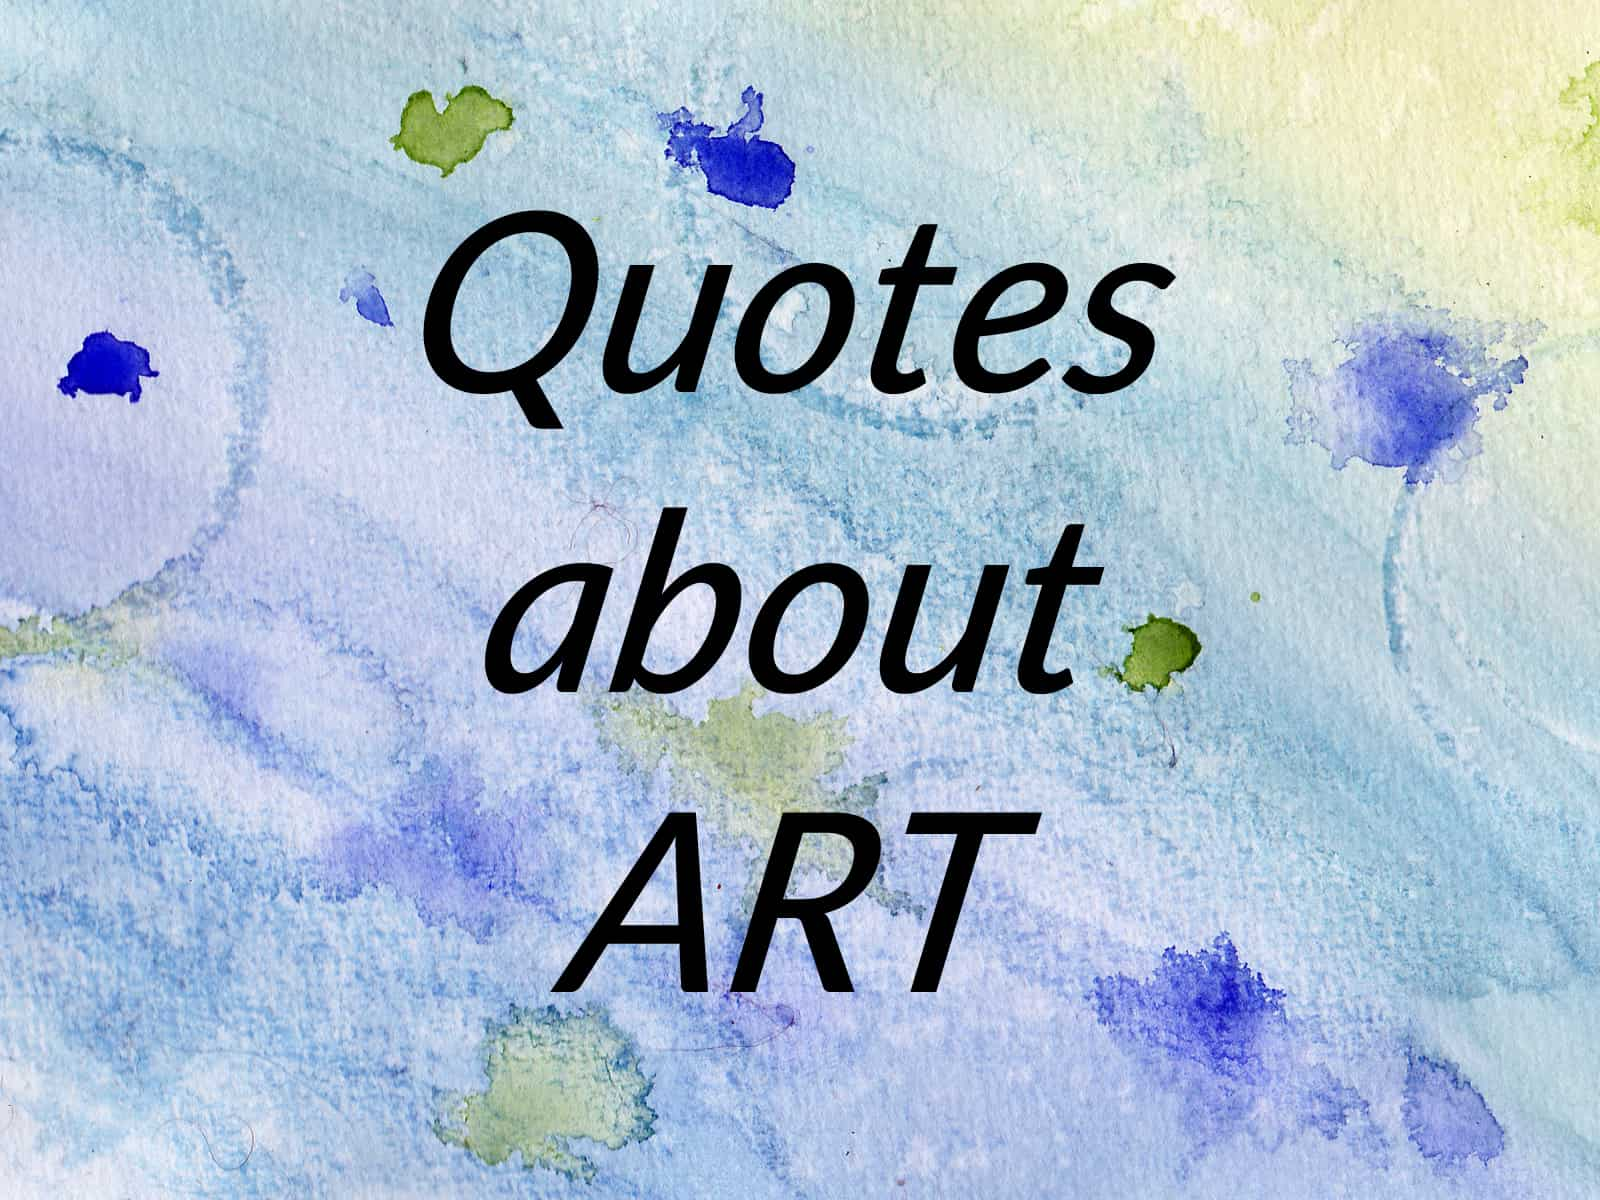 5 Quotes About Art That I Hope You'll Like